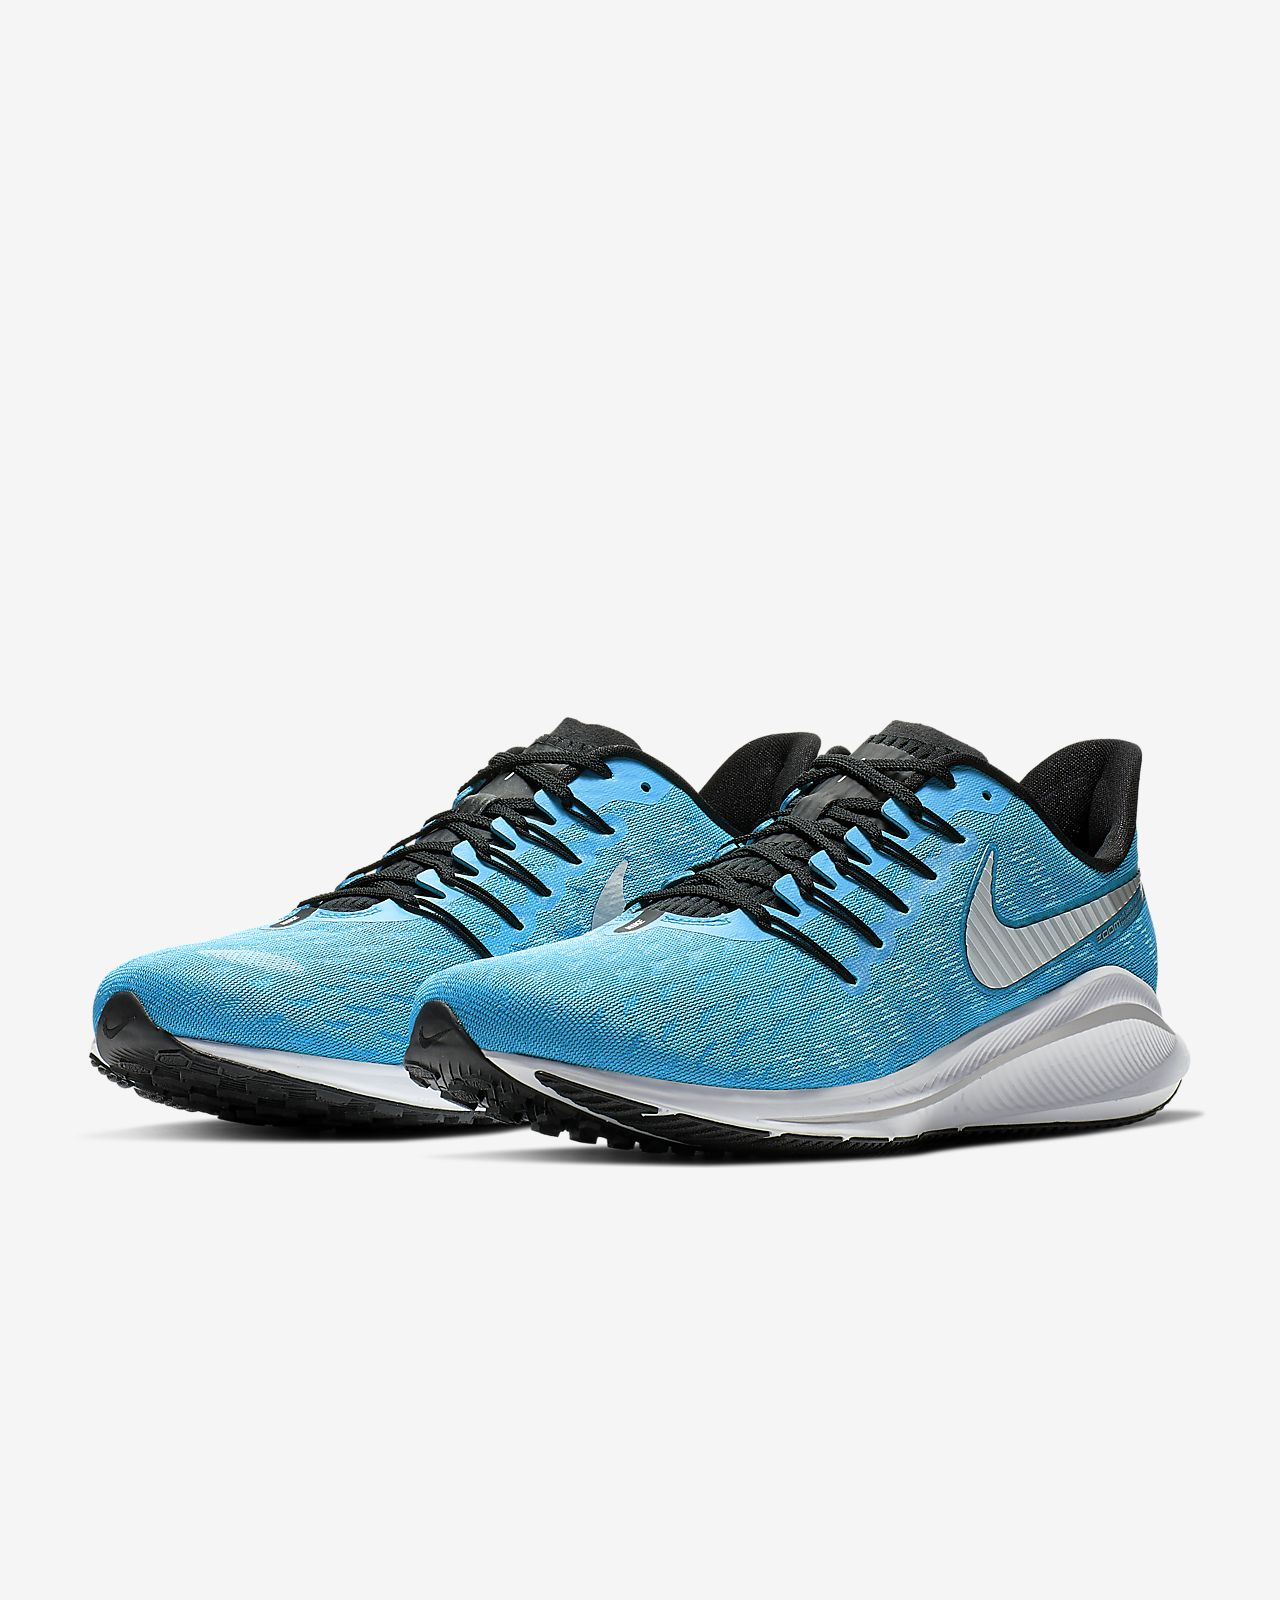 e7ddafbbf47b Nike Air Zoom Vomero 14 Men s Running Shoe. Nike.com